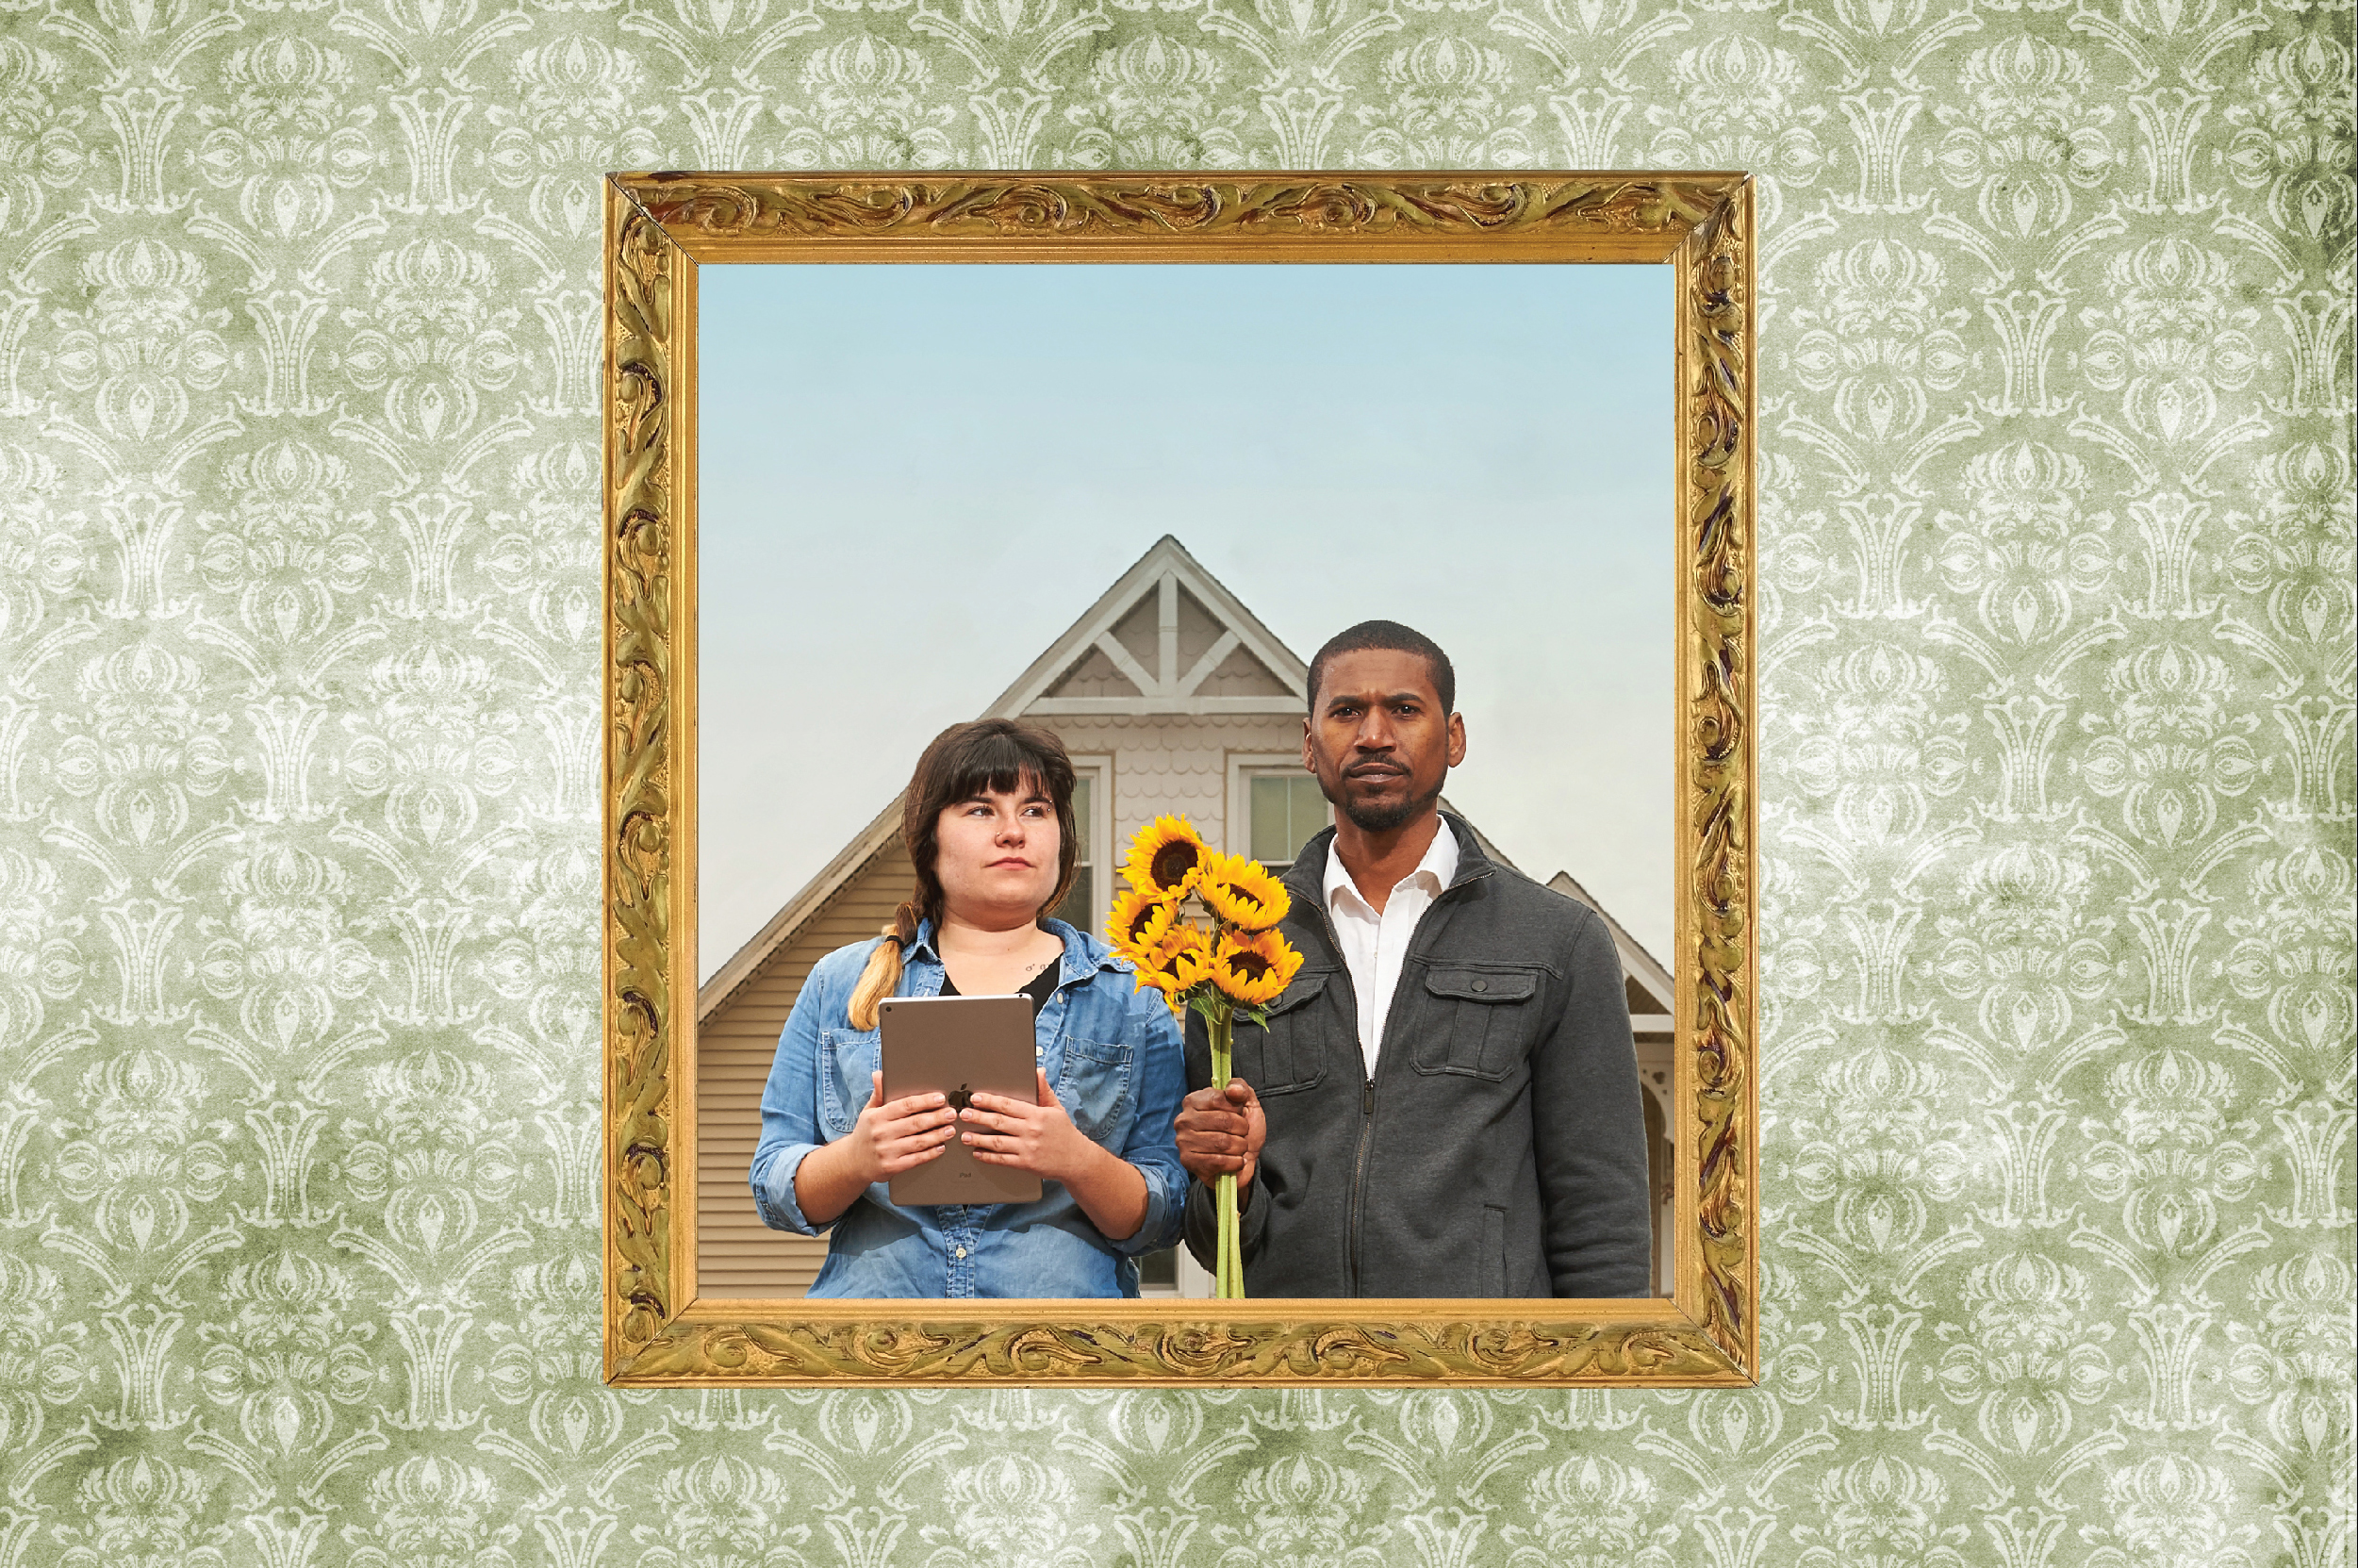 Agriculture students Marisa Kaplita and Macario Rodrigues pose 'American Gothic' style at UConn's Spring Valley Farm. (Photo Art by Peter Morenus & Christa Tubach)